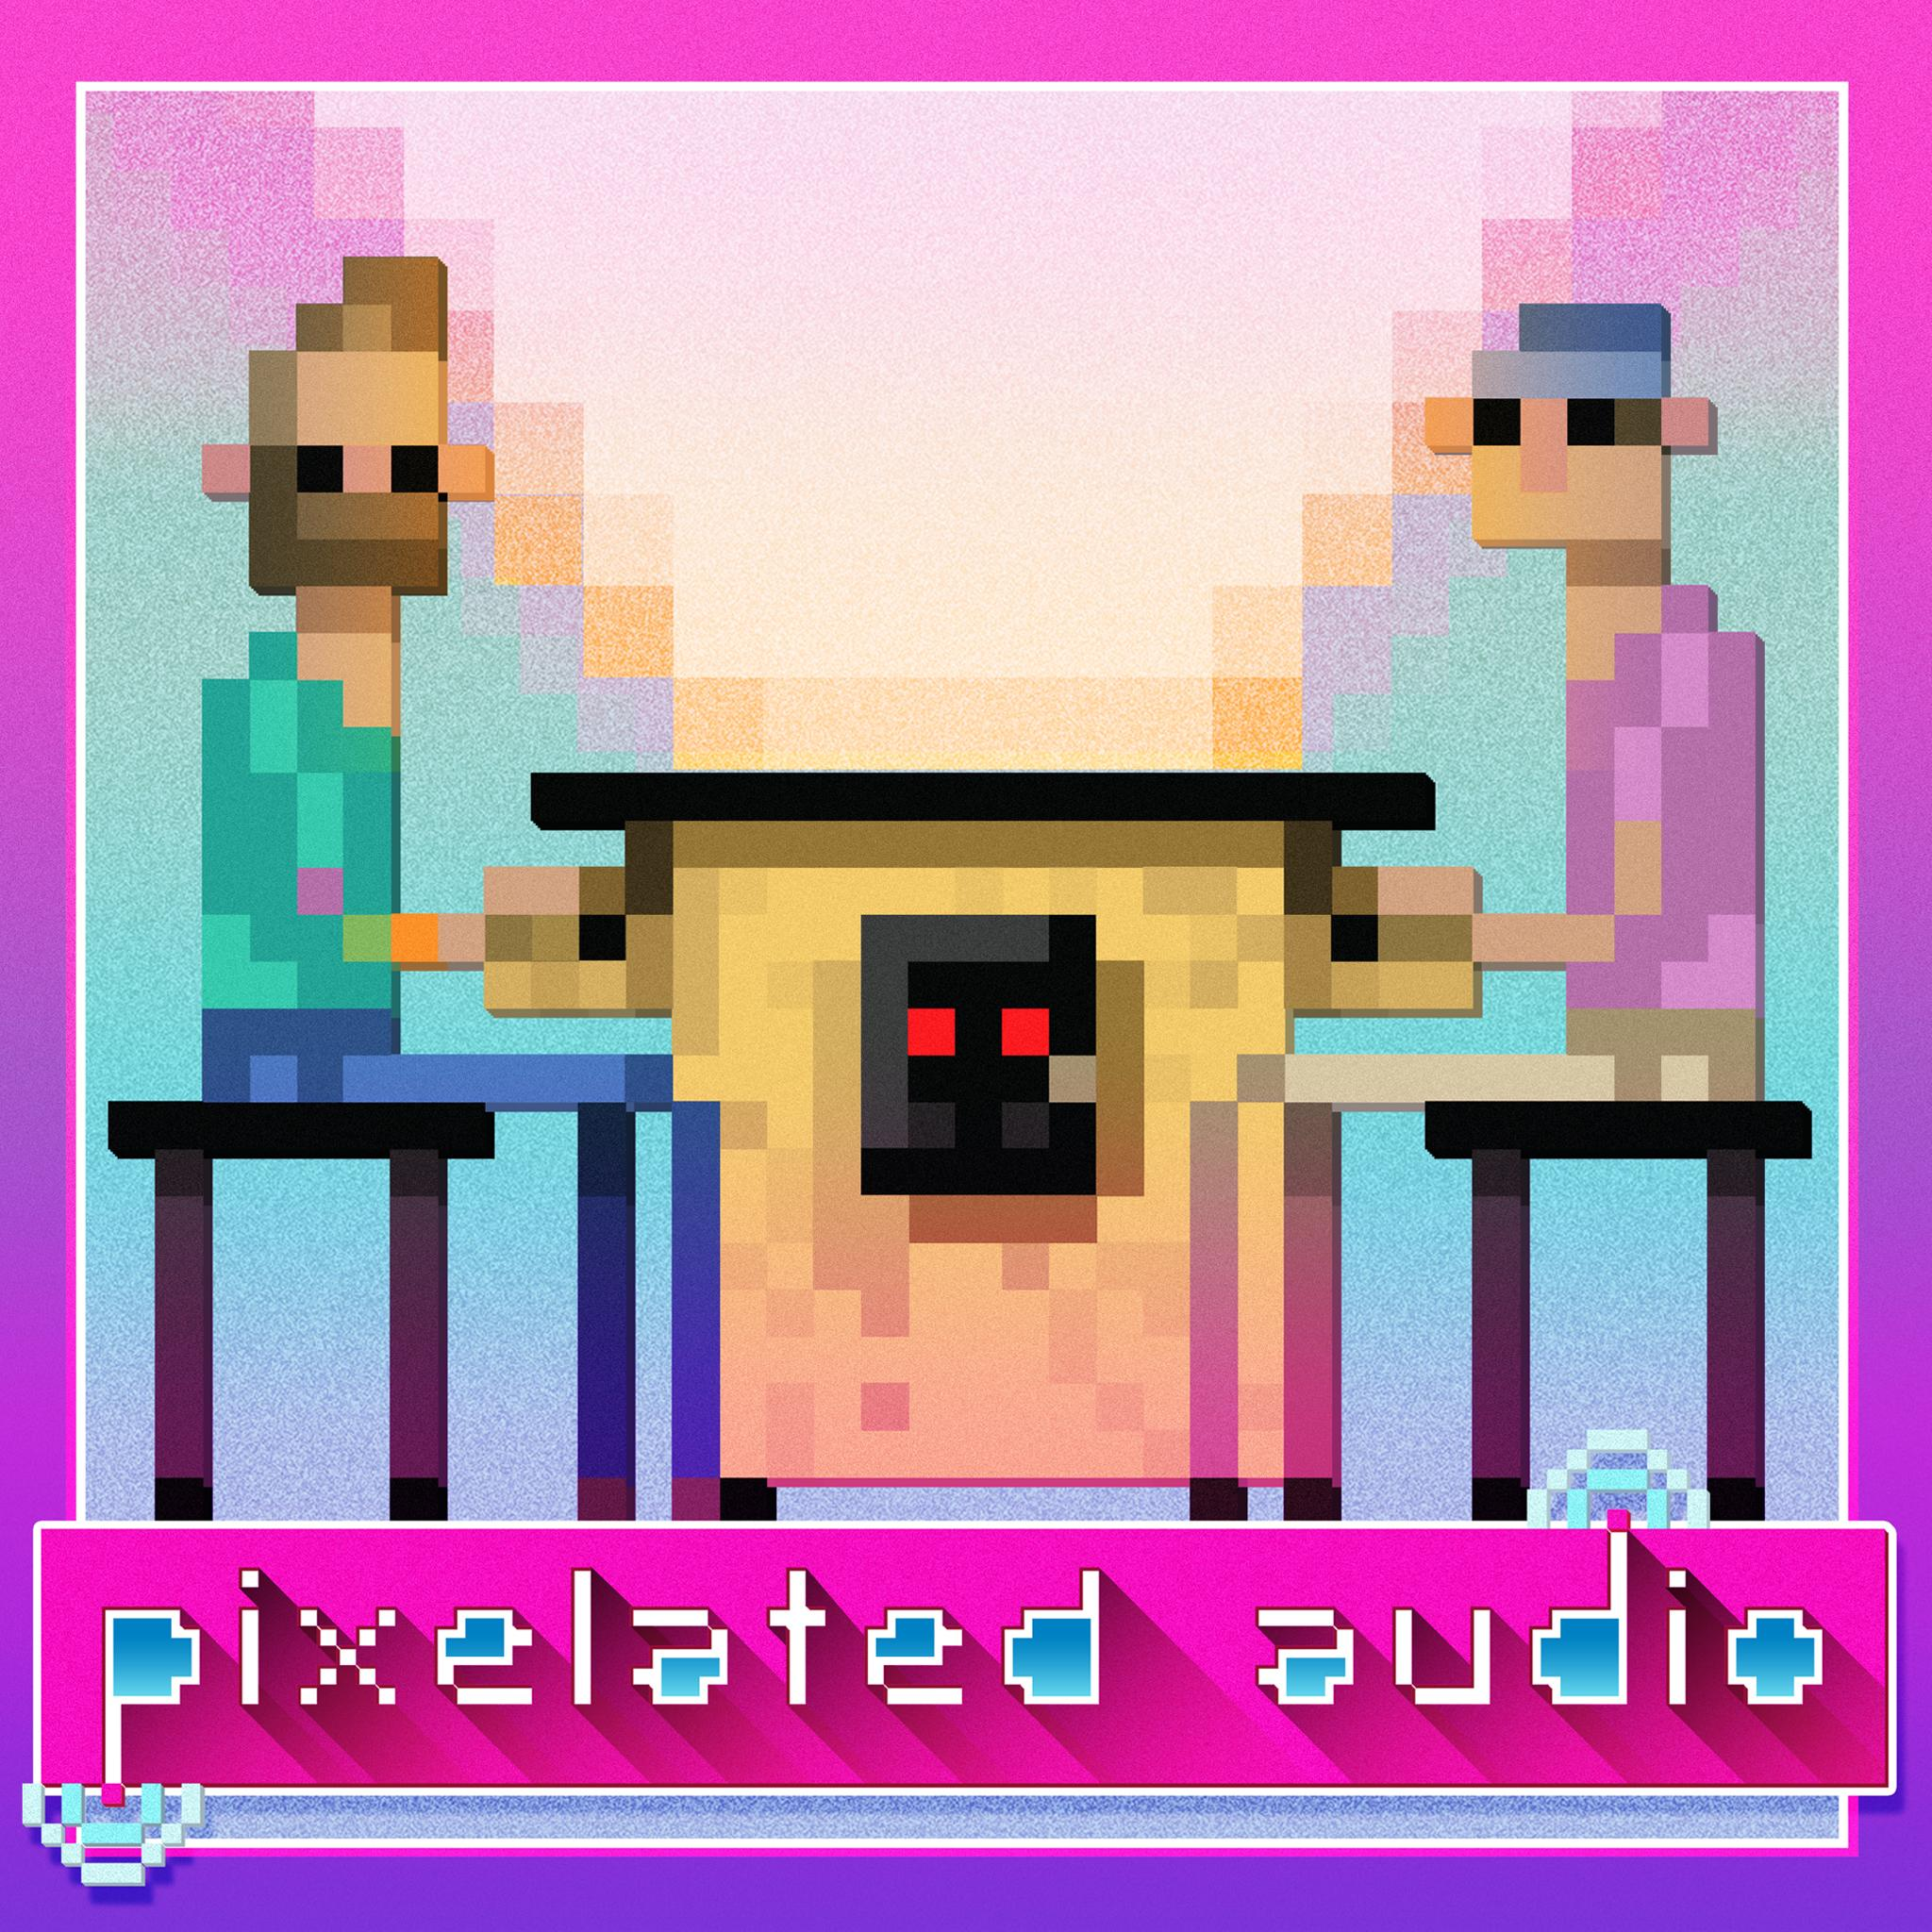 Pixelated Audio - Video Game Music podcast and Retro Gaming pixelated audio album art